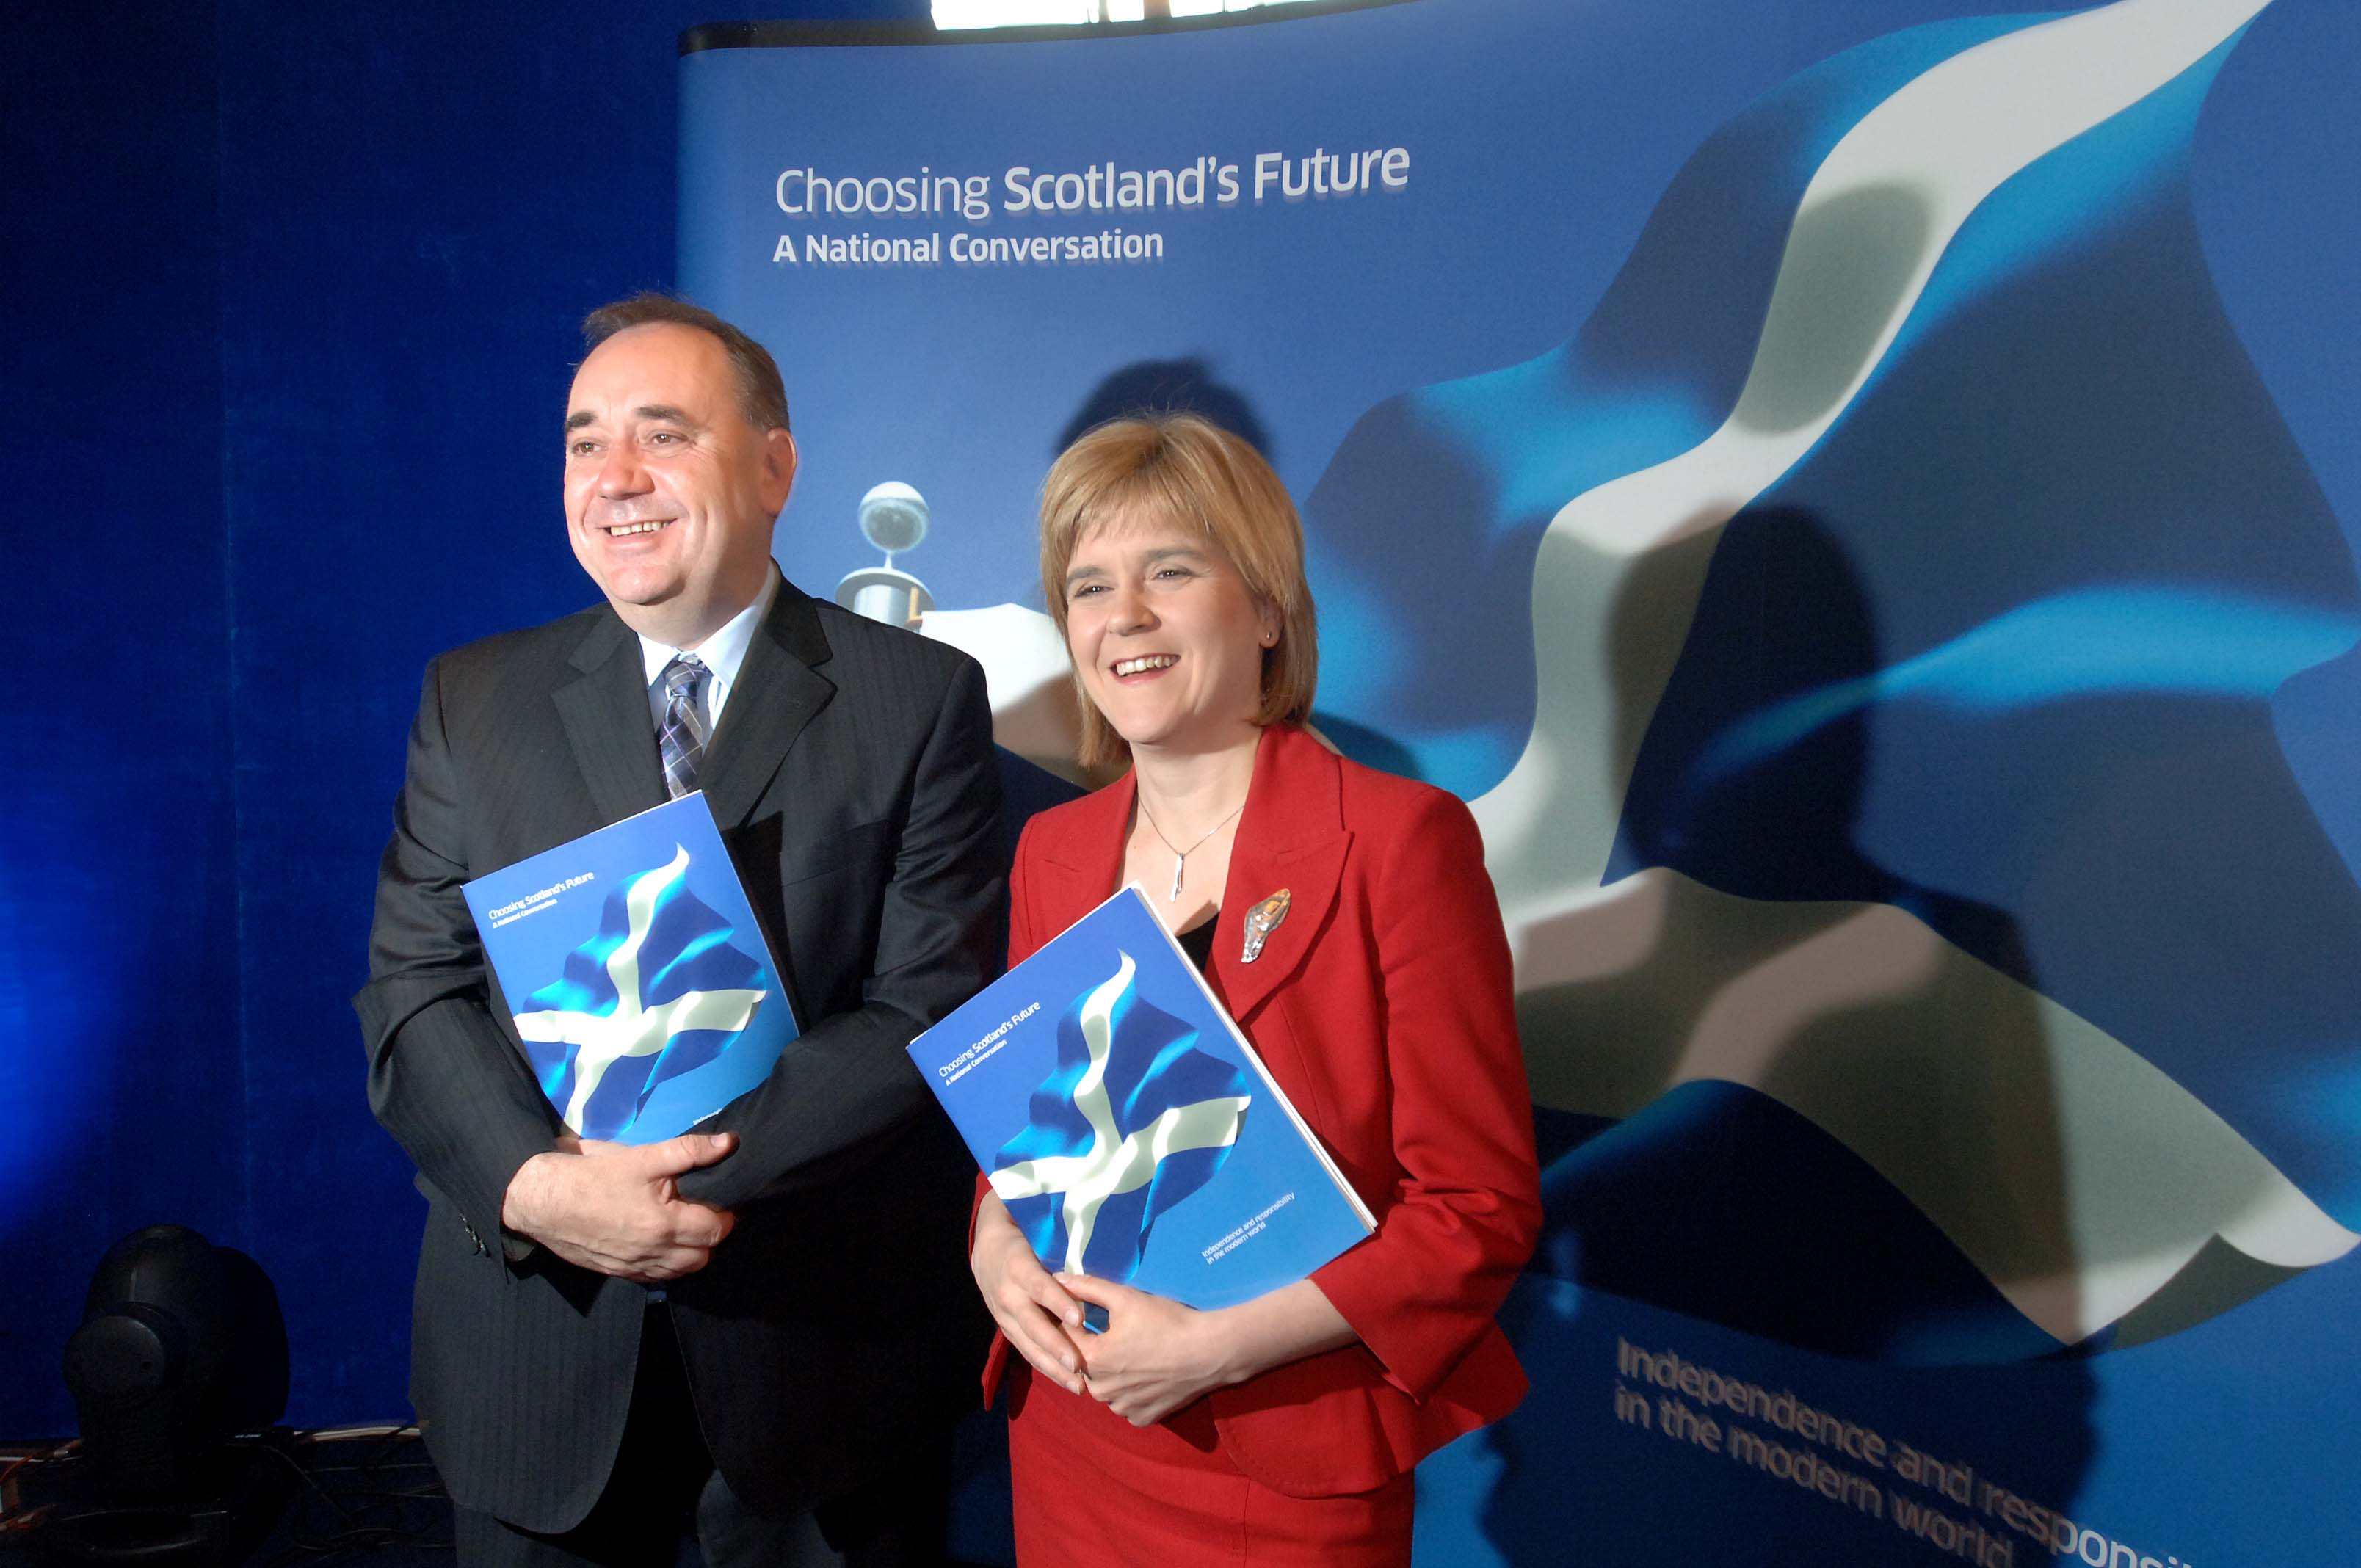 Scottish First Minister Alex Salmond and his deputy, Nikola Sturgeon, launch the National Conversation project on August 14, 2007.